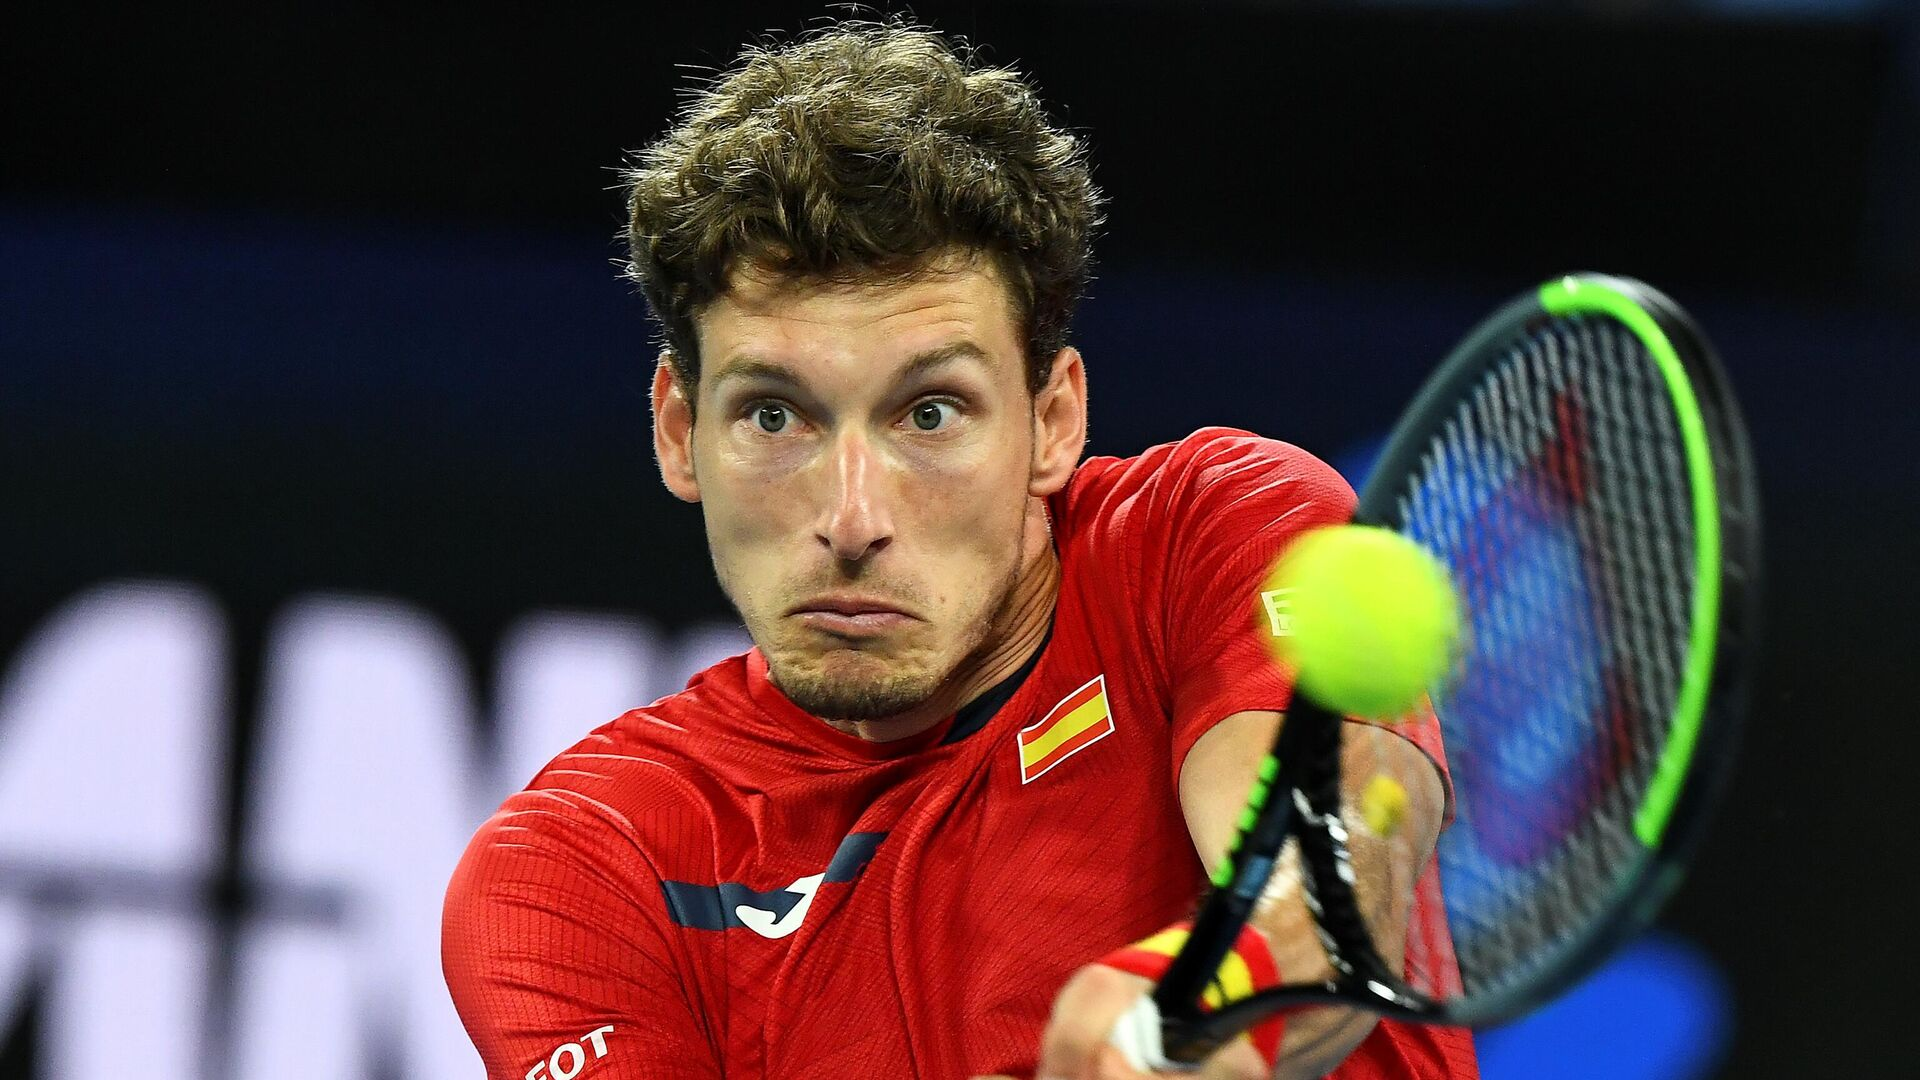 Spain's Pablo Carreno Busta hits a return against Greece's Michail Pervolarakis during their group B ATP Cup singles match in Melbourne on February 5, 2021. (Photo by William WEST / AFP) / -- IMAGE RESTRICTED TO EDITORIAL USE - STRICTLY NO COMMERCIAL USE -- - РИА Новости, 1920, 05.02.2021